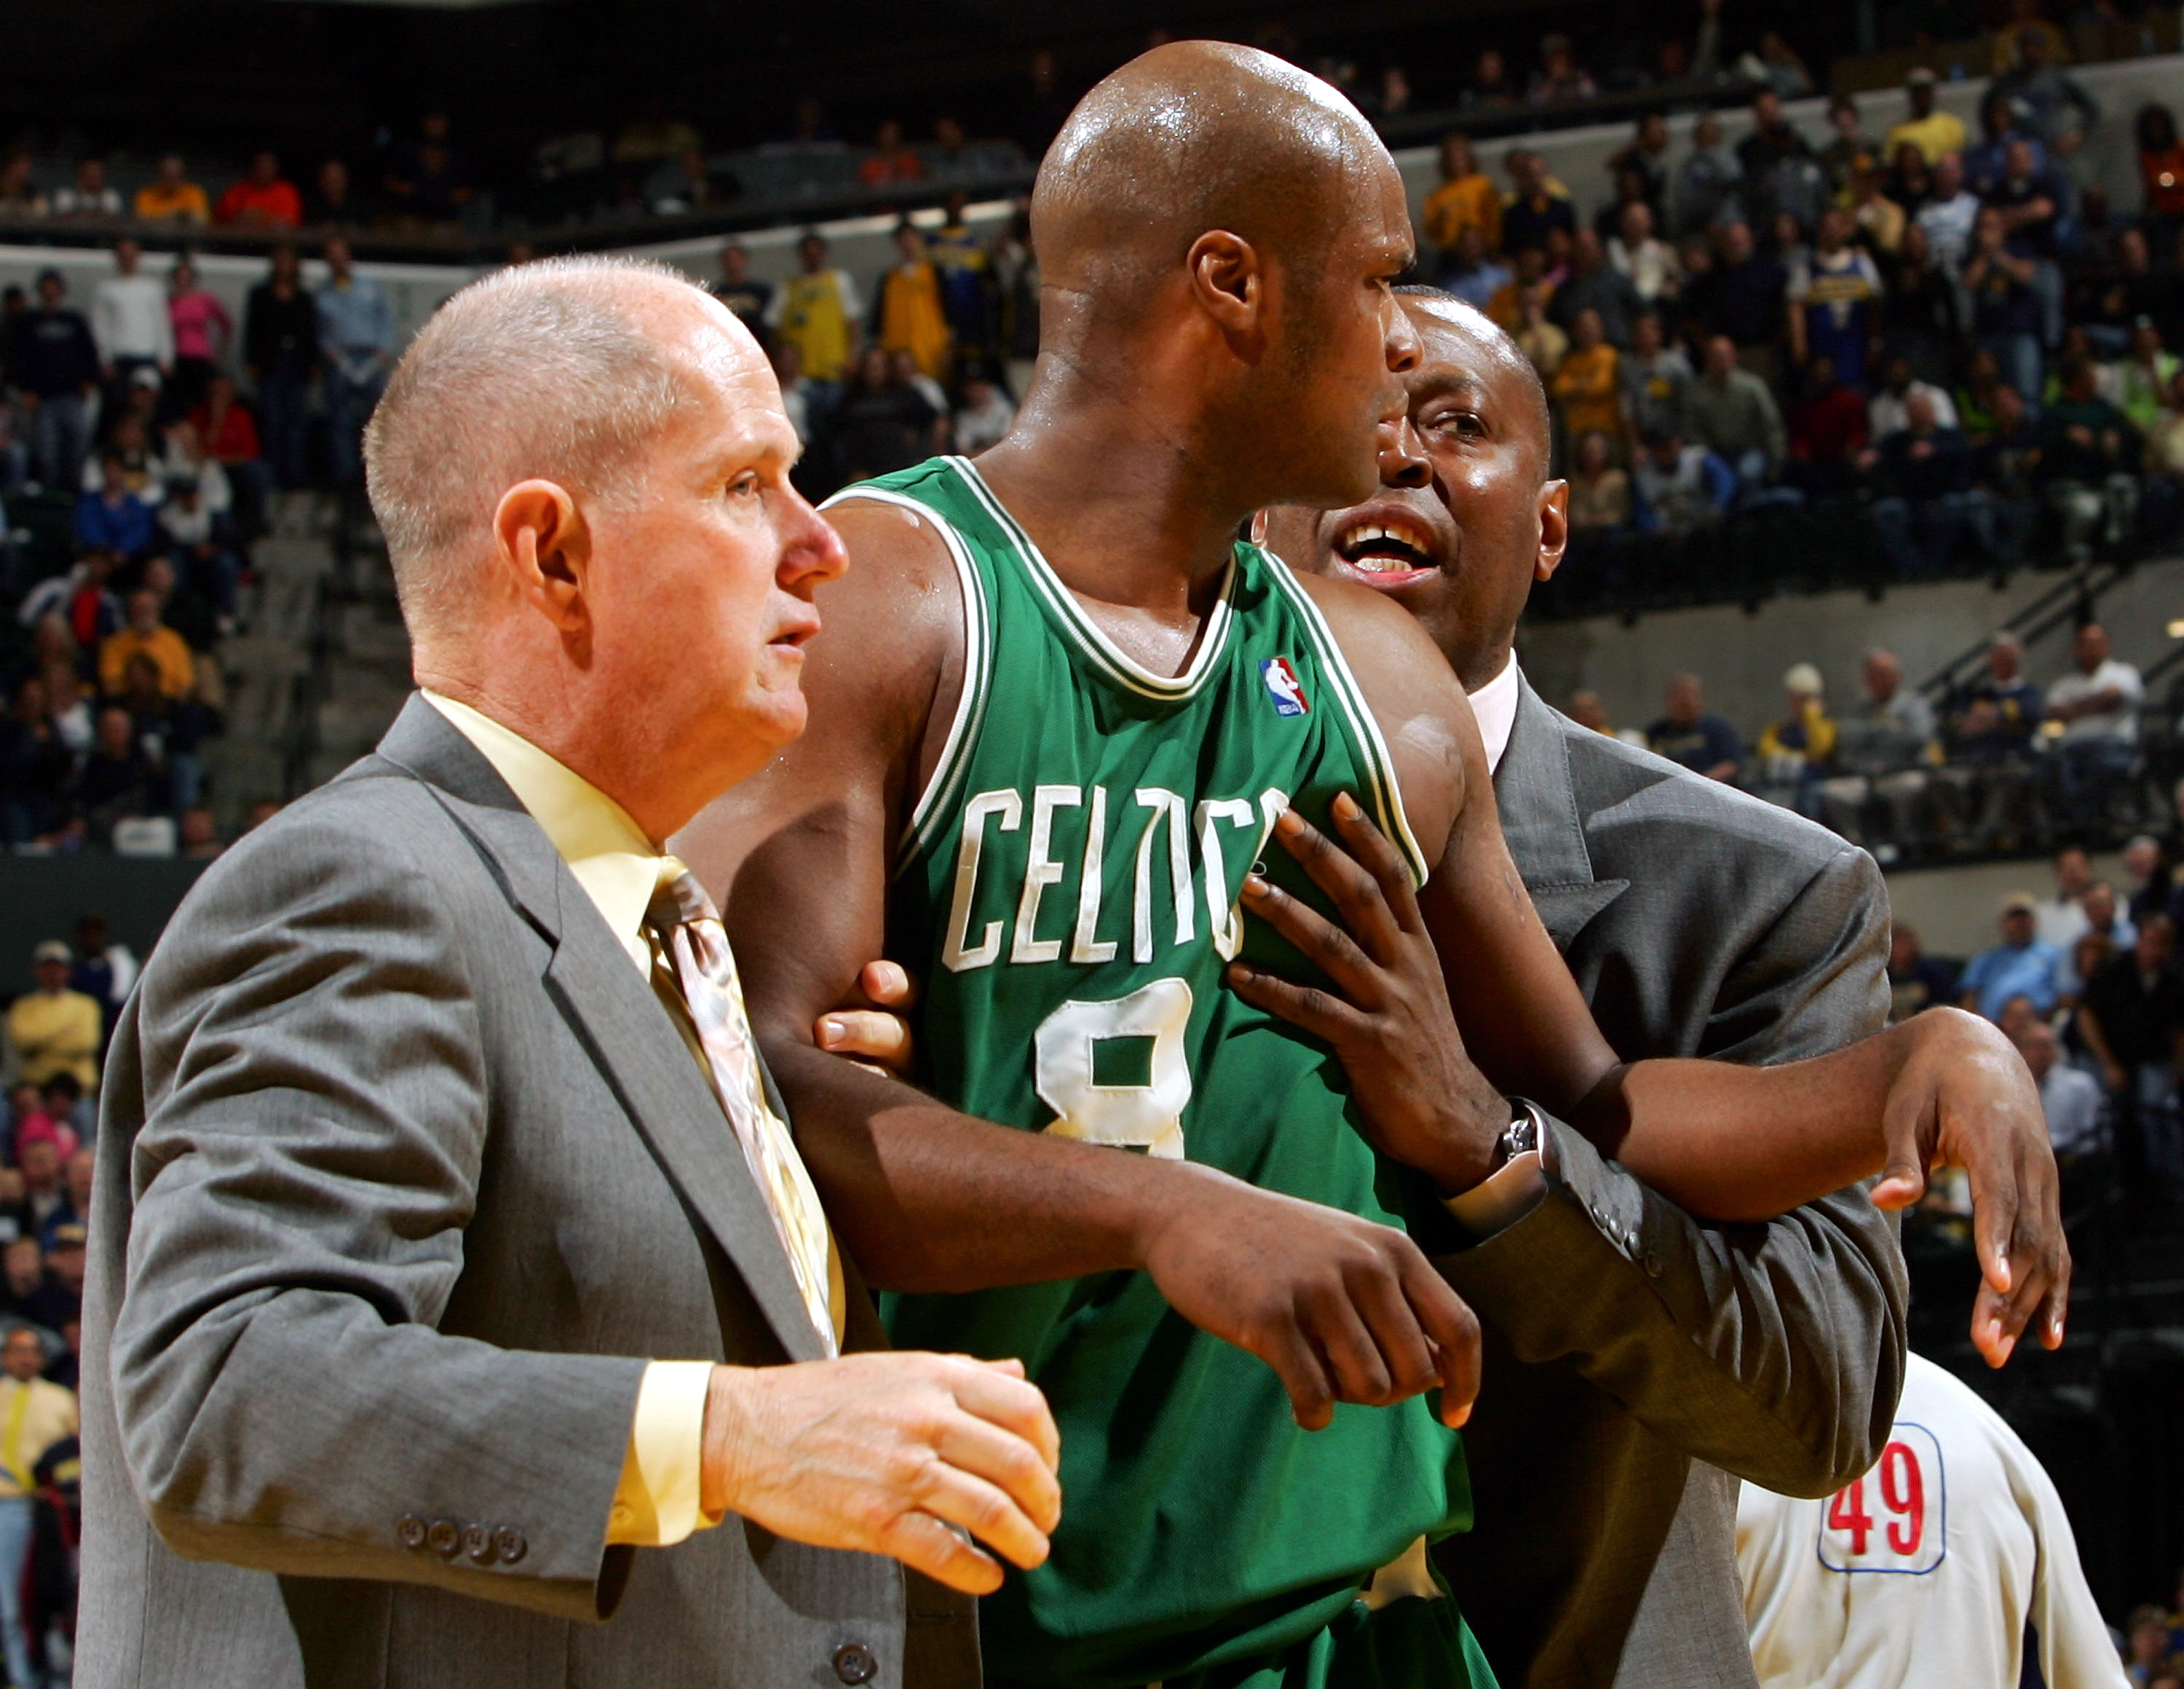 INDIANAPOLIS - APRIL 28: Antoine Walker #8 of the Boston Celtics is ejected from the game after he received his second technical foul in Game three of the Western Conference Quarterfinals during the 2005 NBA Playoffs on April 28, 2005 at Conseco Field Hou